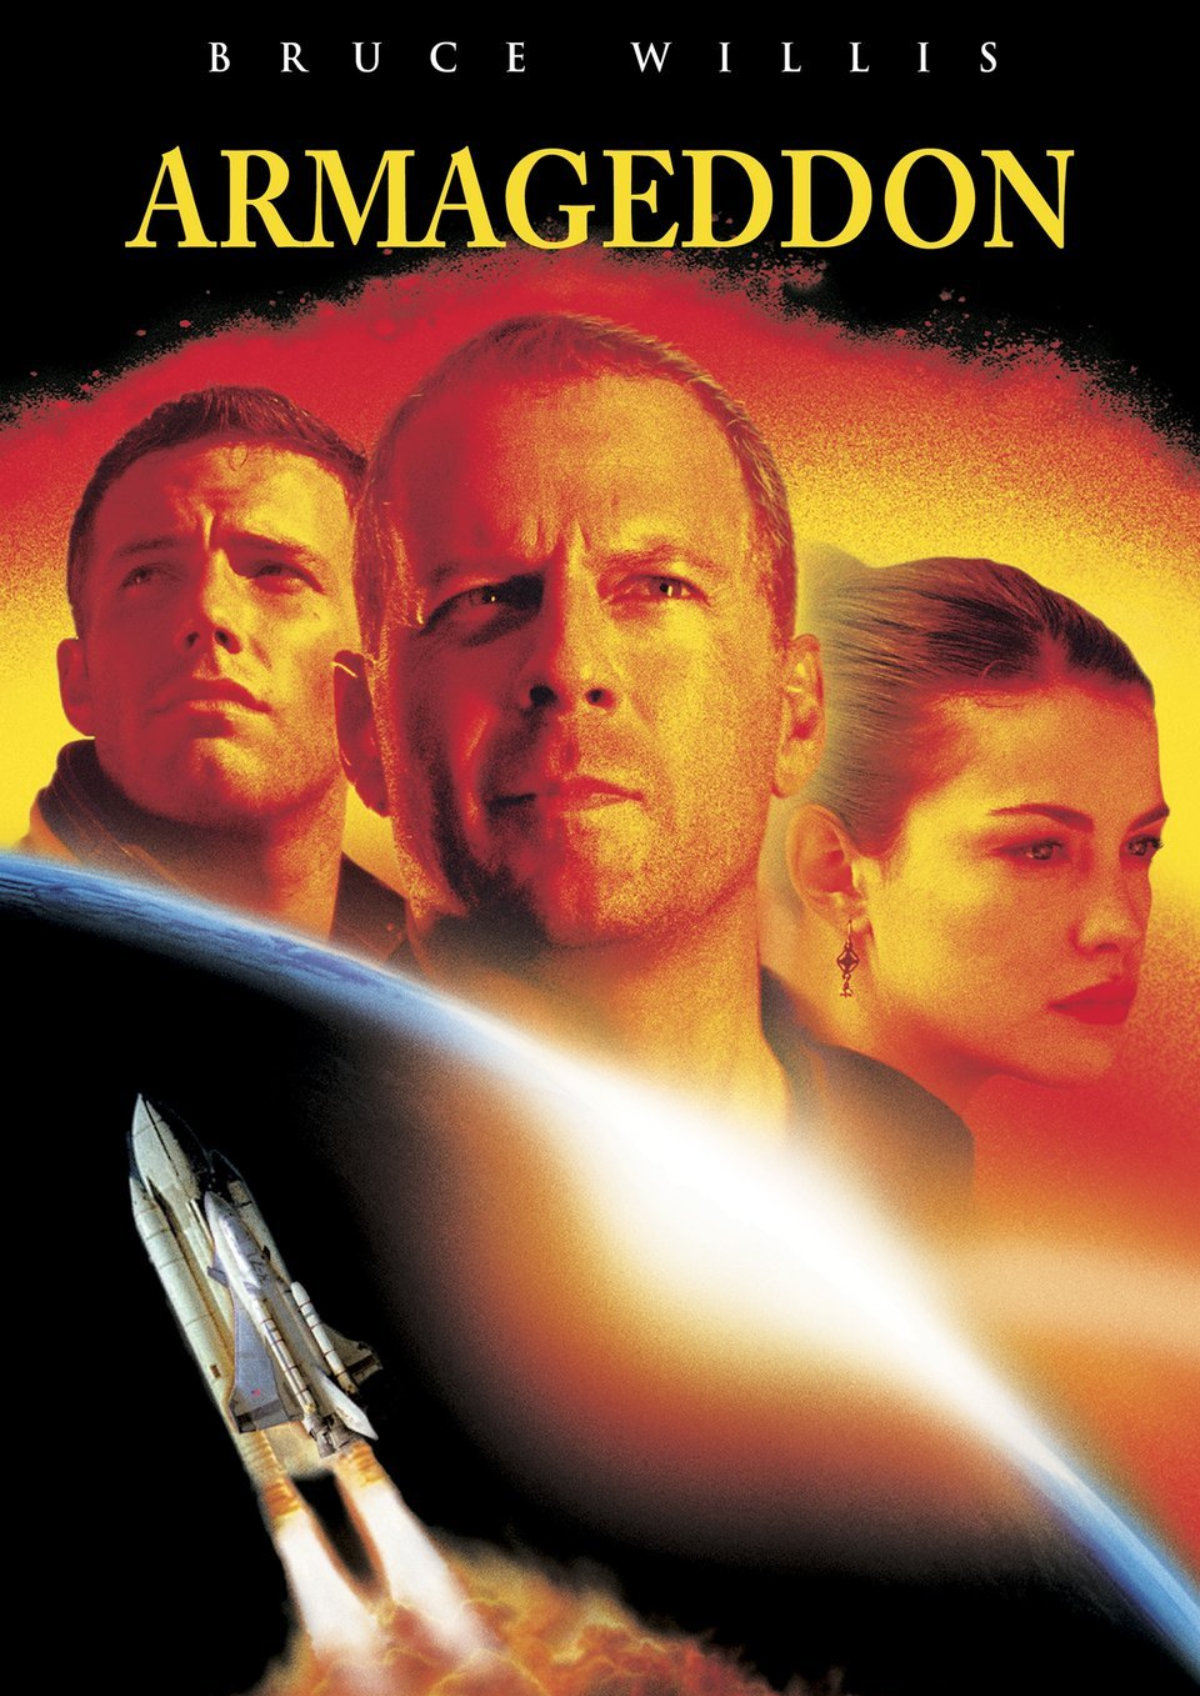 'Armageddon' movie poster